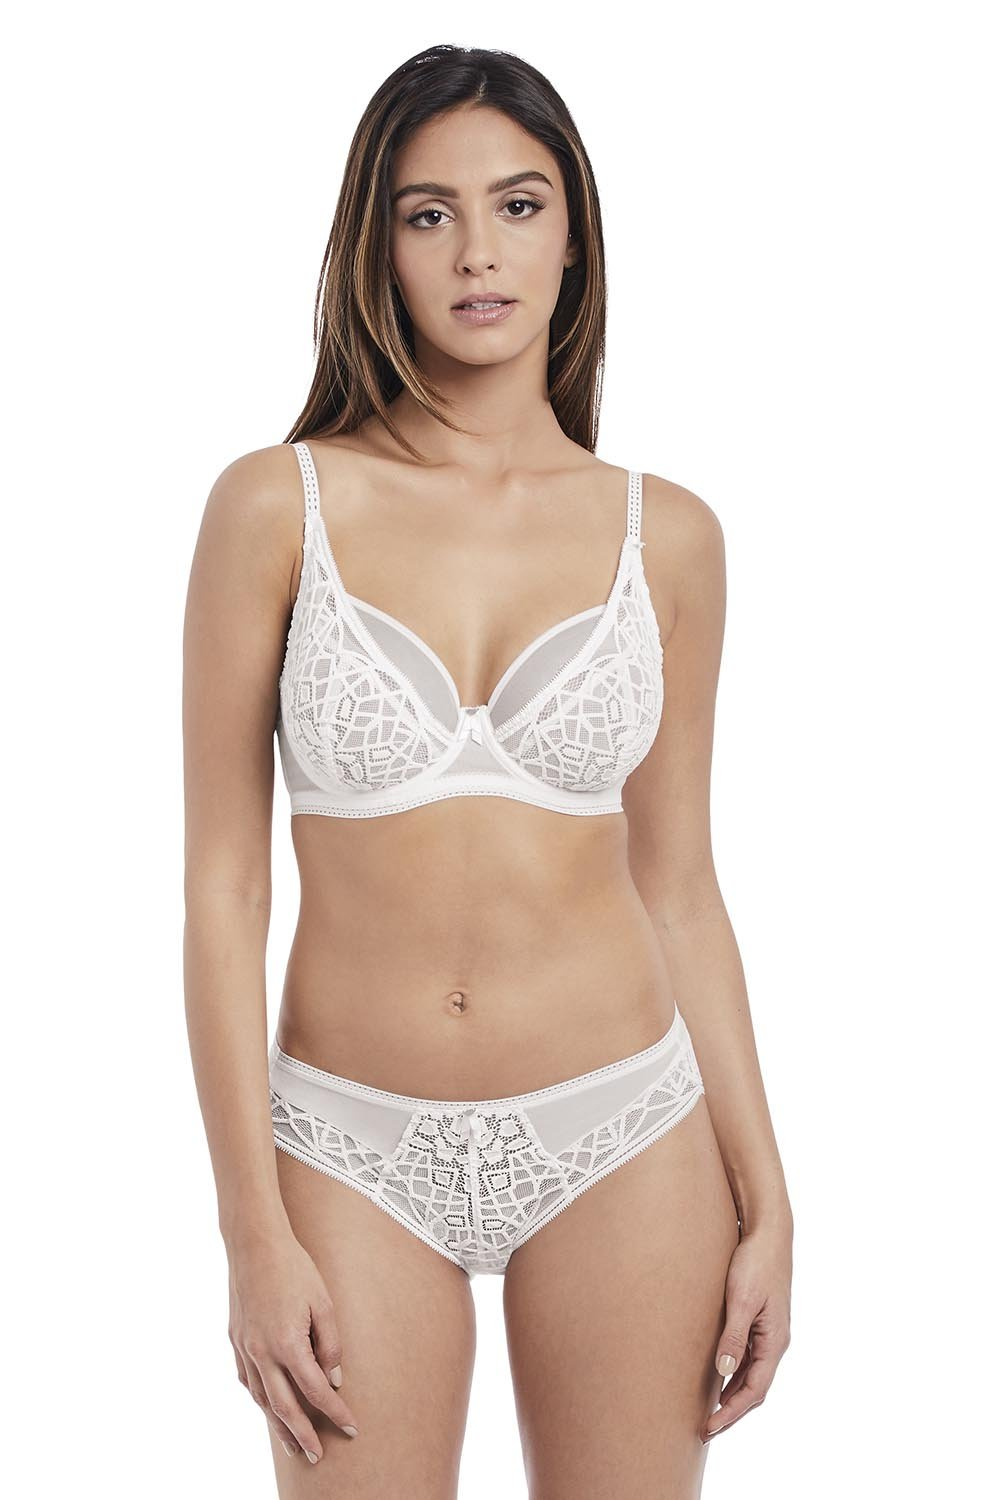 Soiree Lace High Apex Bra - Studio Europe